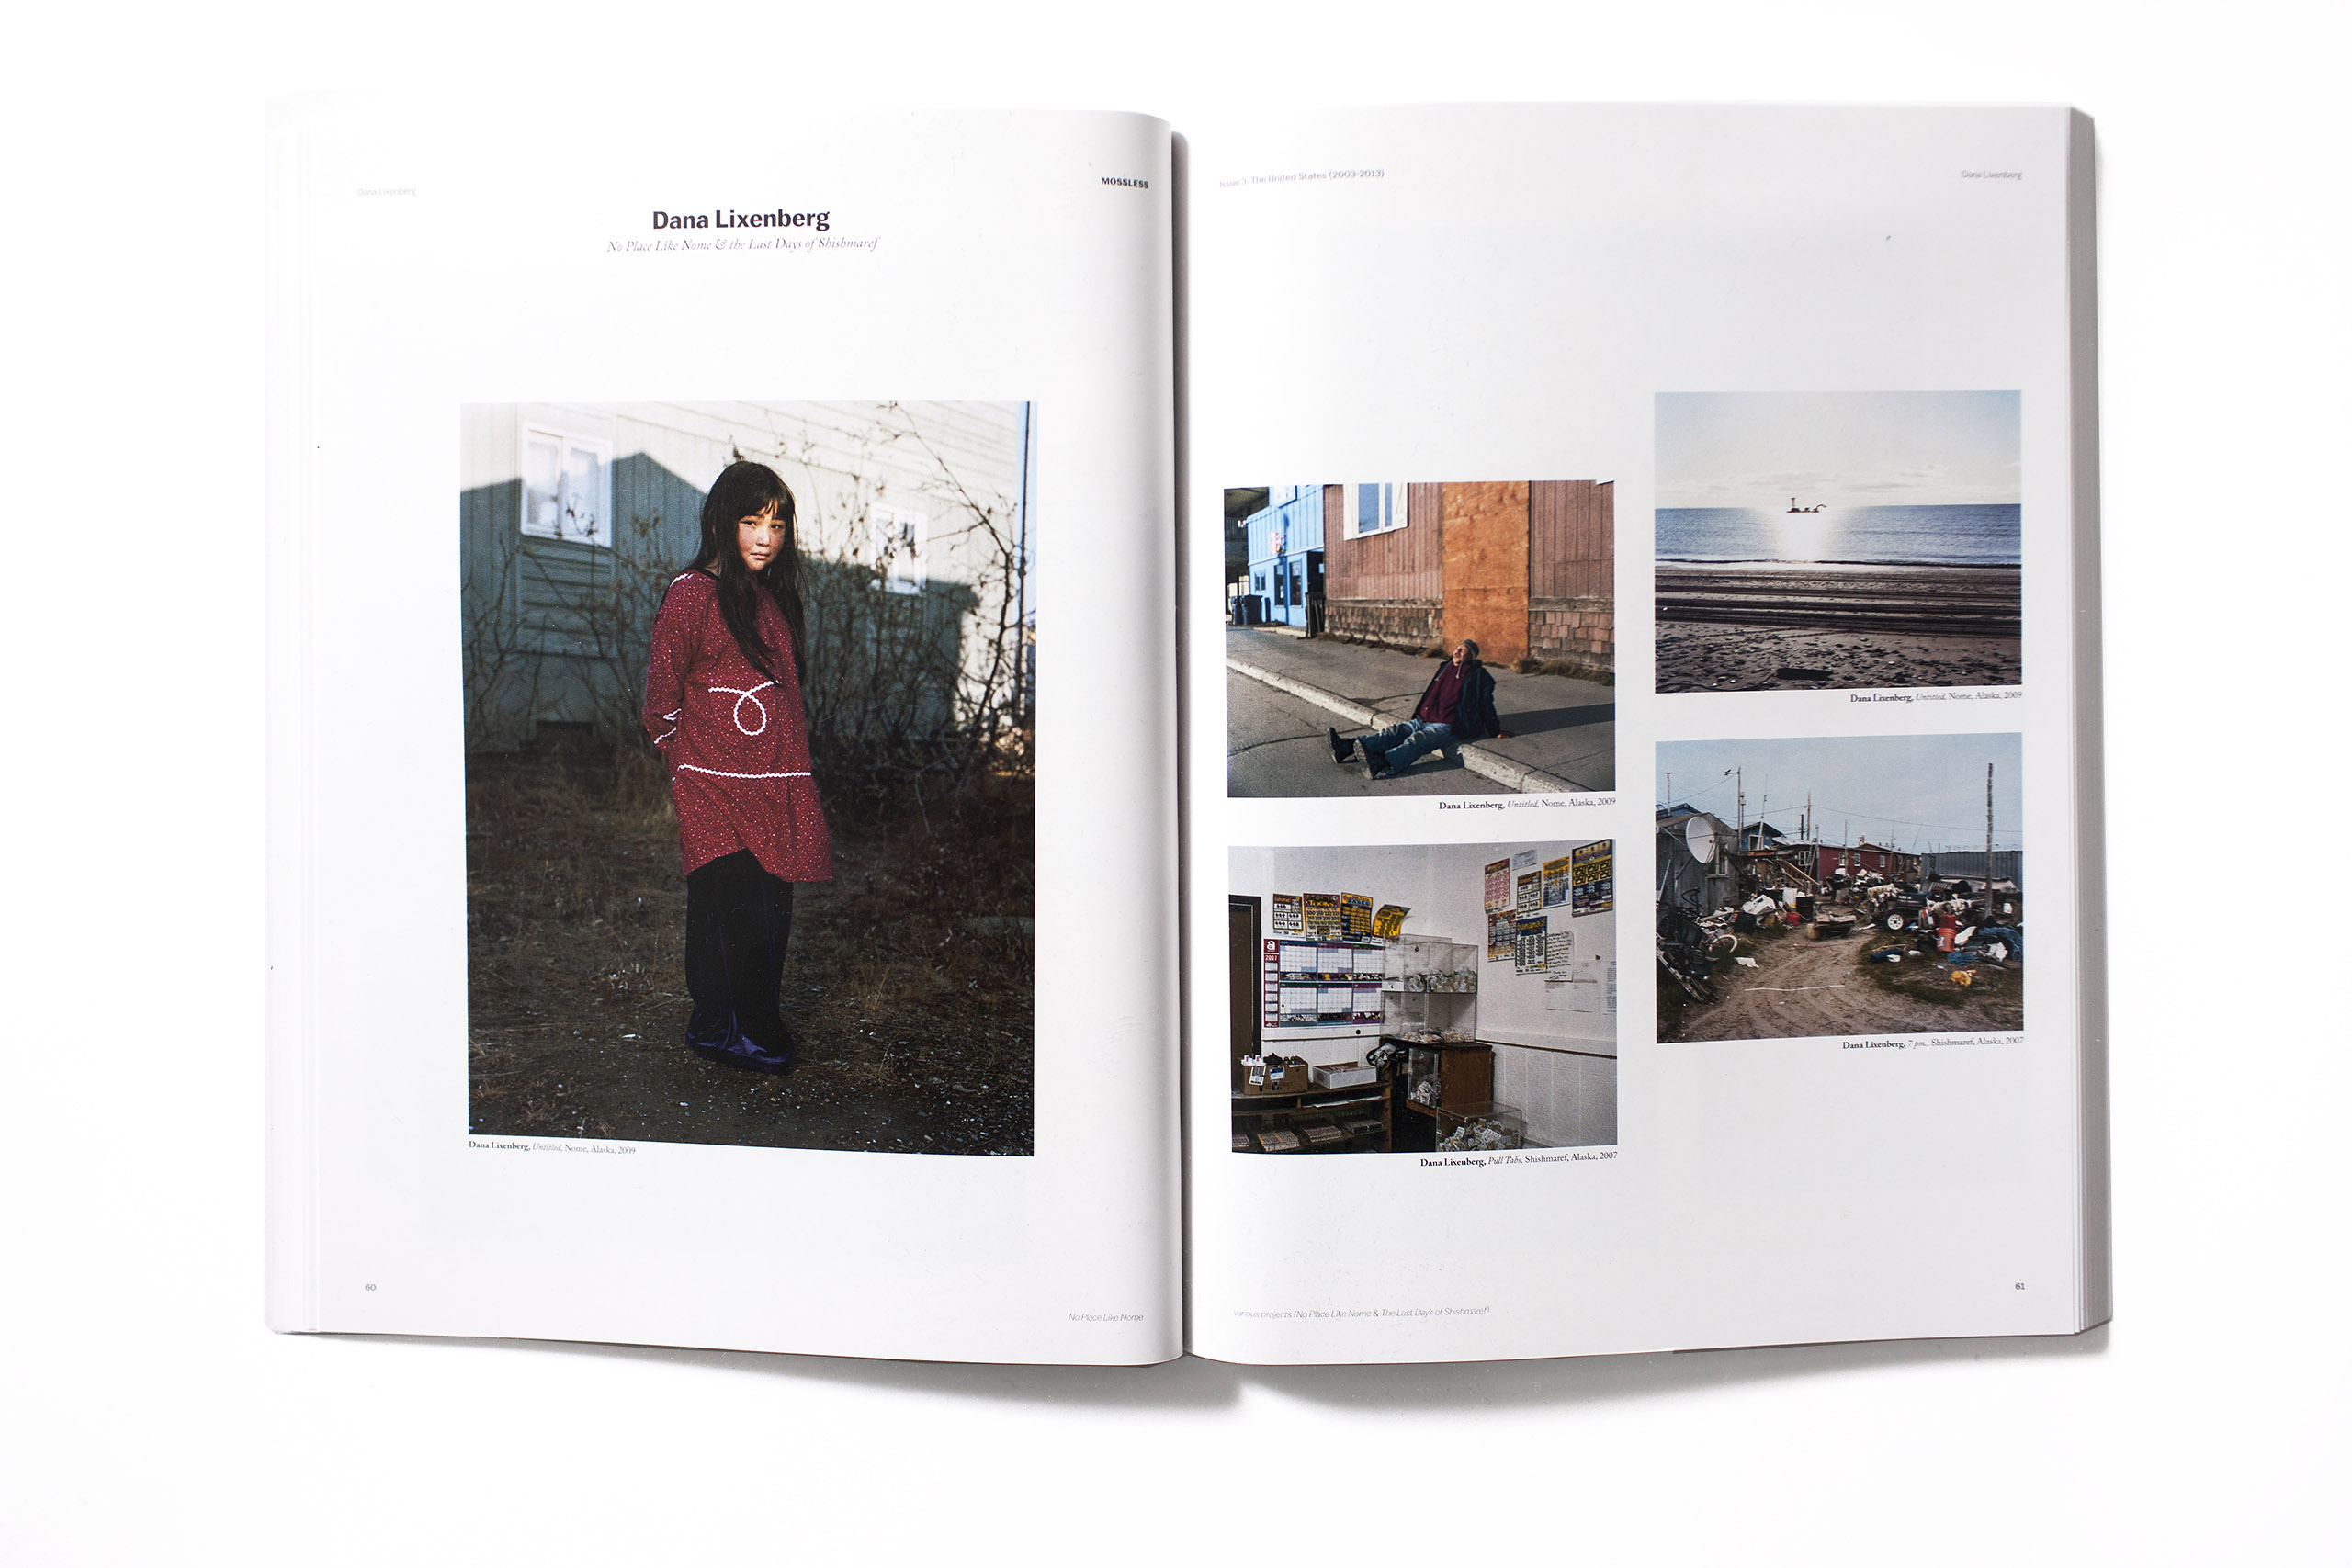 """""""Although technically a periodical, Issue Three of <i>Mossless</i> magazine is 216 pages, includes the work of over 100 photographers, and took the better part of two years to research and produce. As a collection of American documentary photographs published to the Internet during the last ten years, it positions well established photographers alongside lesser known artists working in all parts of the country. Visual evidence of the economic crash reveals itself across spreads featuring both poetically curated collections of cell phone-sized photos by different artists and small portfolios of single photographers (Kathya Landeros, Ilona Szwarc, Paul D'Amato, and Daniel Shea, among many others). 'You can see the same groans in each photo,"""" Romke Hoogwaerts, co publisher of Mossless told me. """"Everybody is kind of tired."""" Take from it what you will—the book is lush and uplifting, and it confirms that social documentary photography is alive and well. """"                                                                      -Matthew Leifheit, Photo Editor at <i>VICE</i>"""